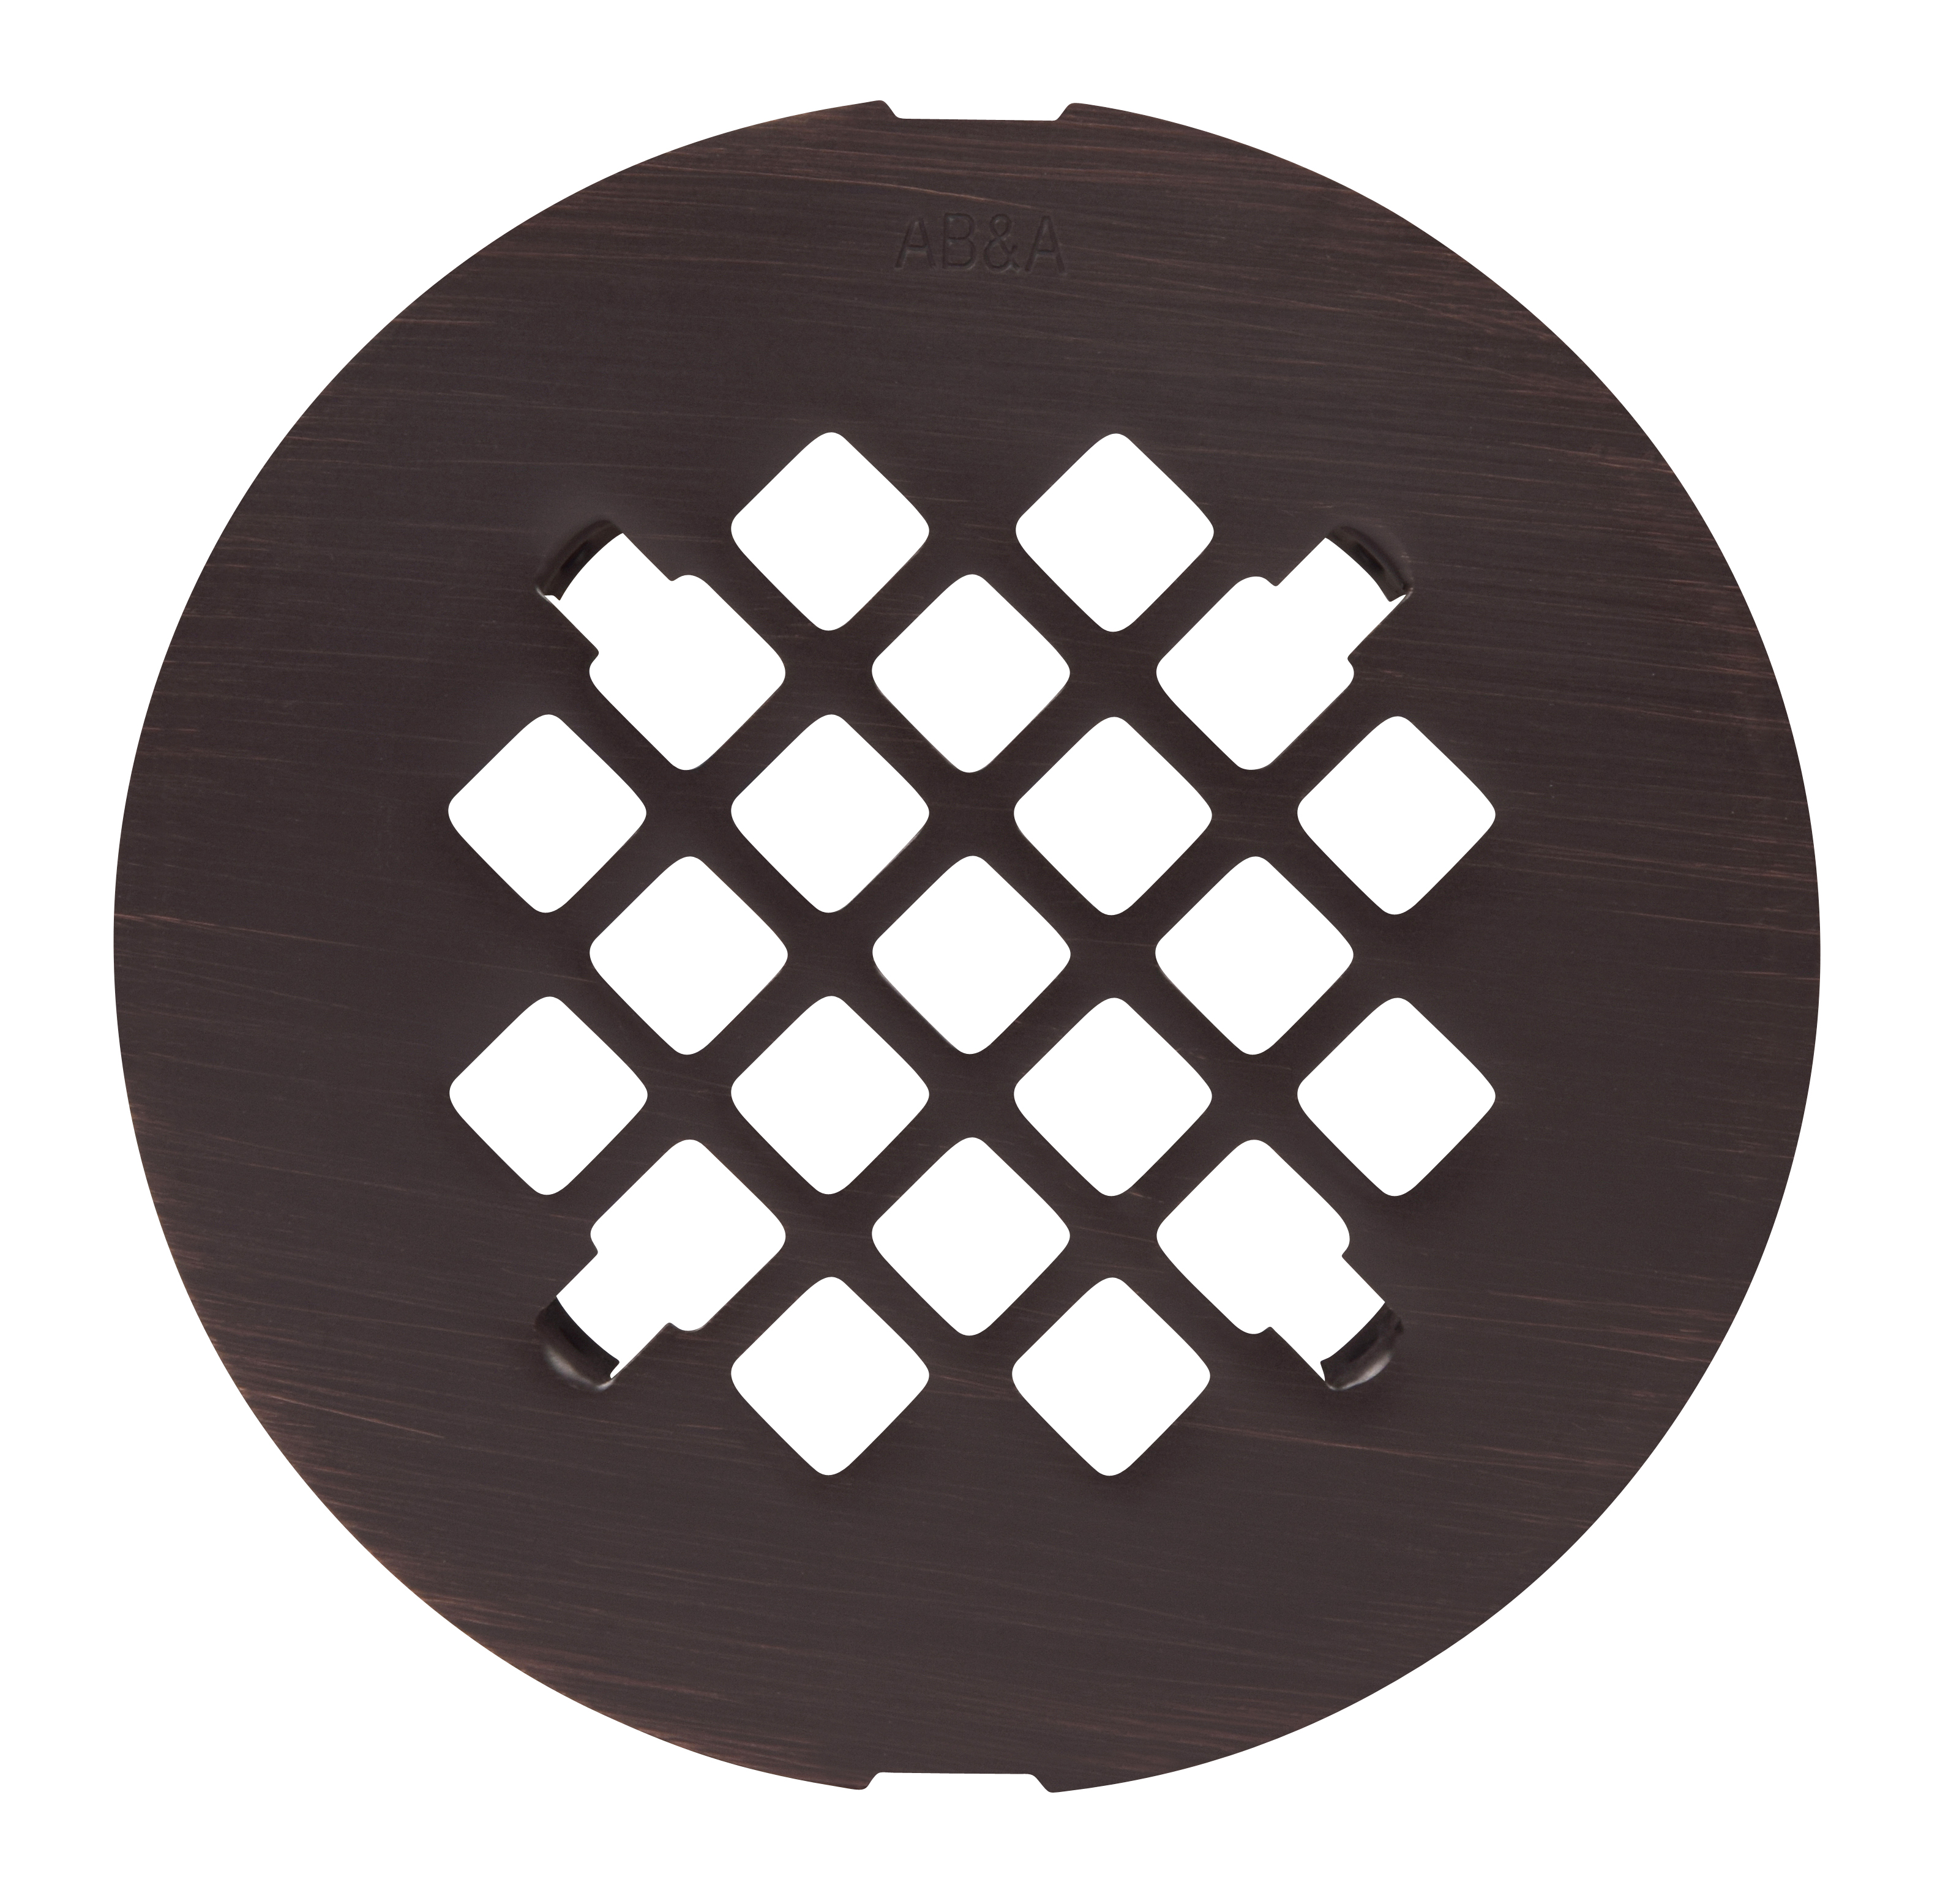 AB&A Shower Drain Grate - Snap-in, Round 4-1/4 Snap-In Steel Grate (7200 Series), Venetian Bronze - Carded .